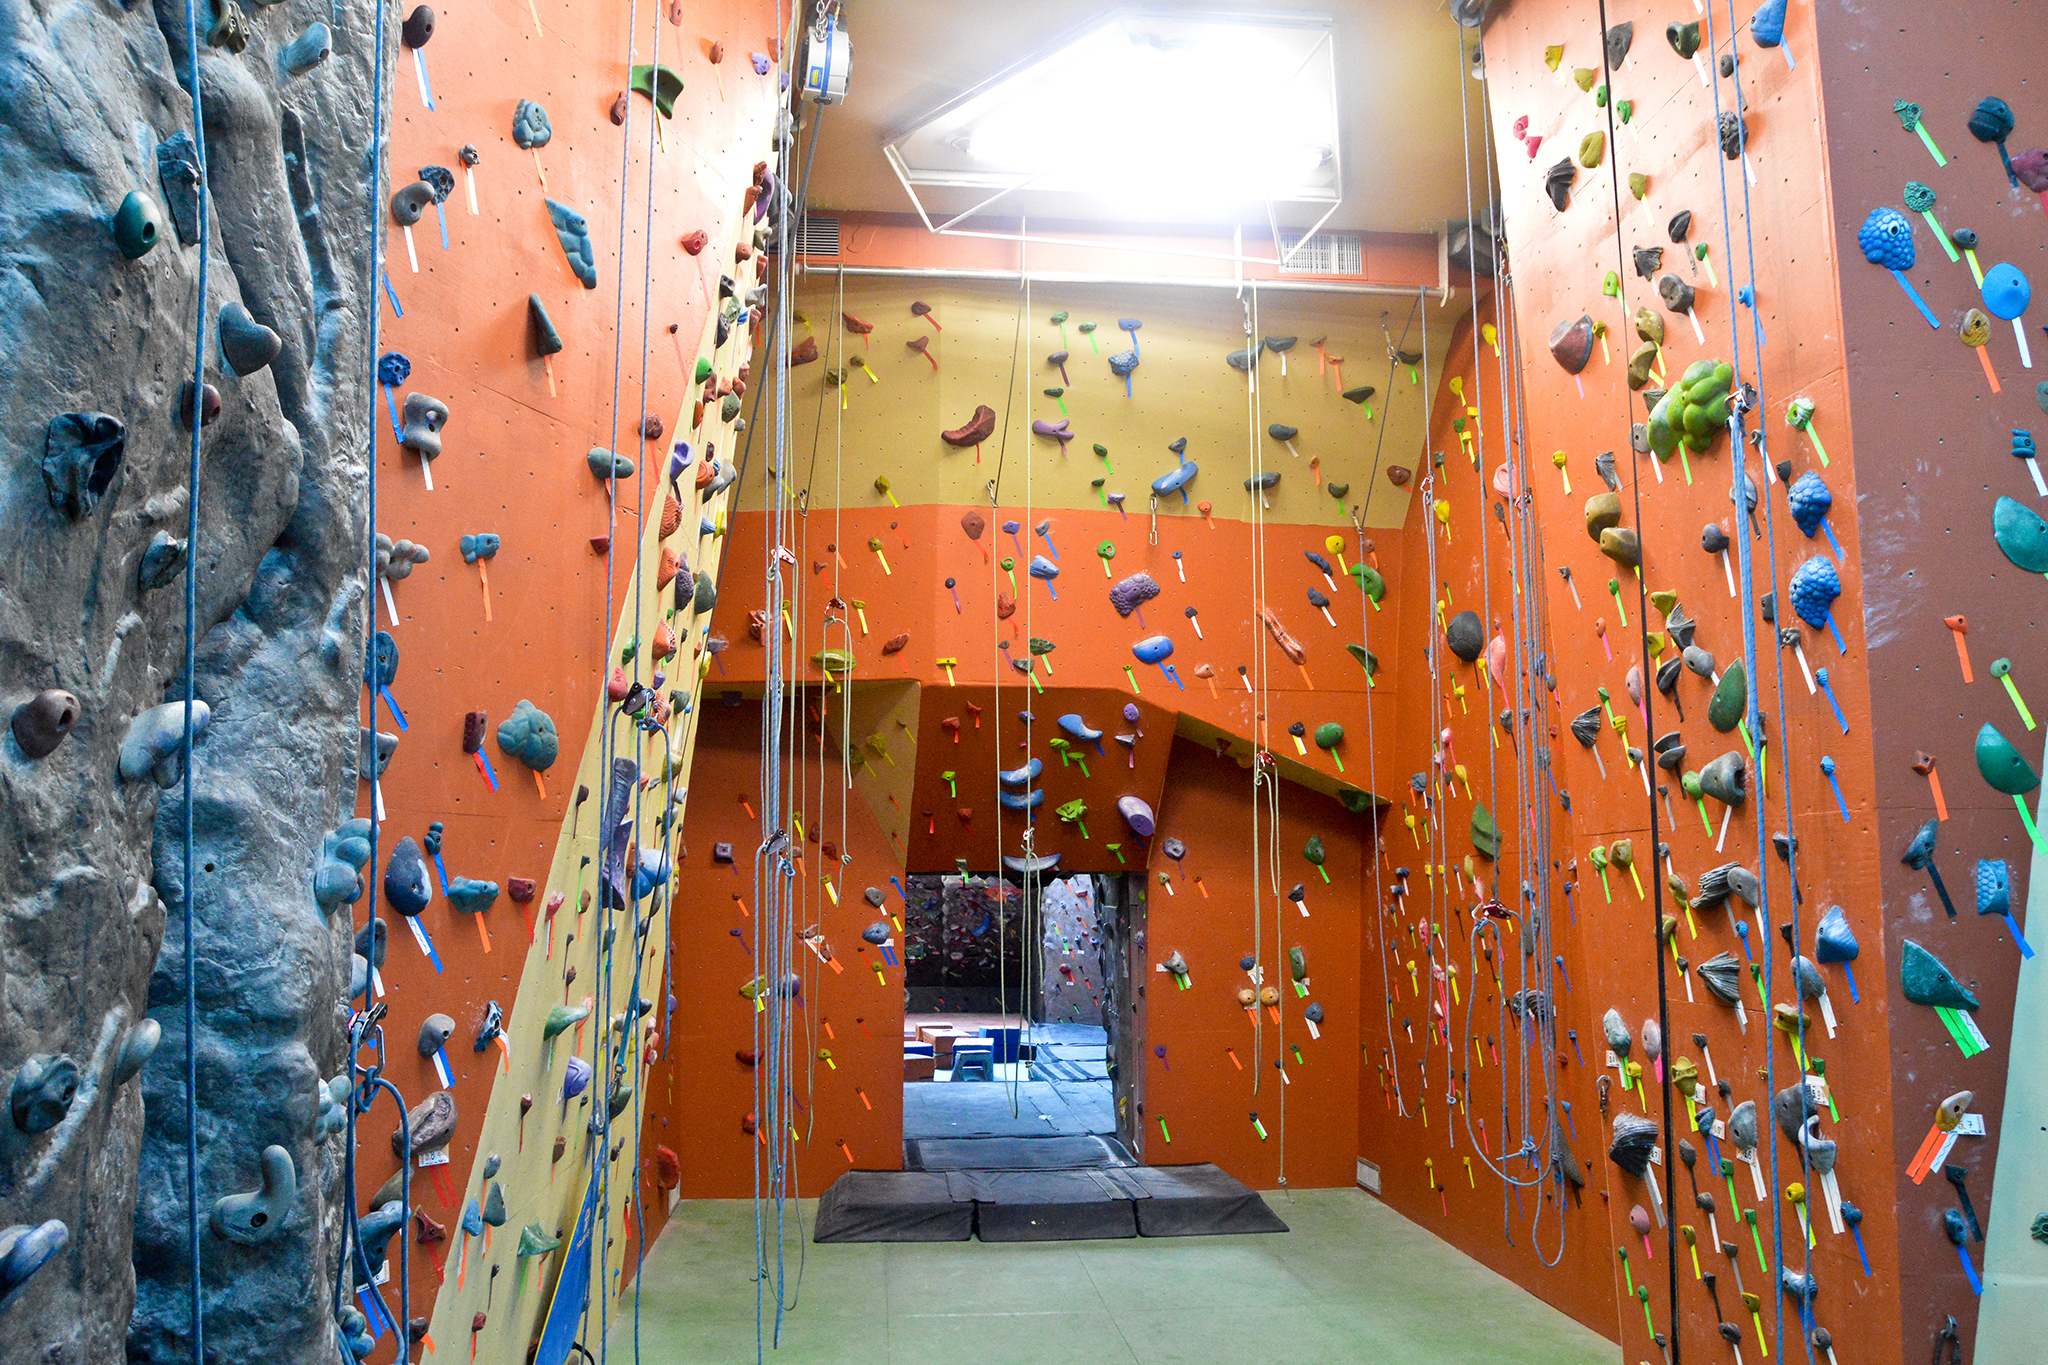 The best places to go rock climbing in NYC